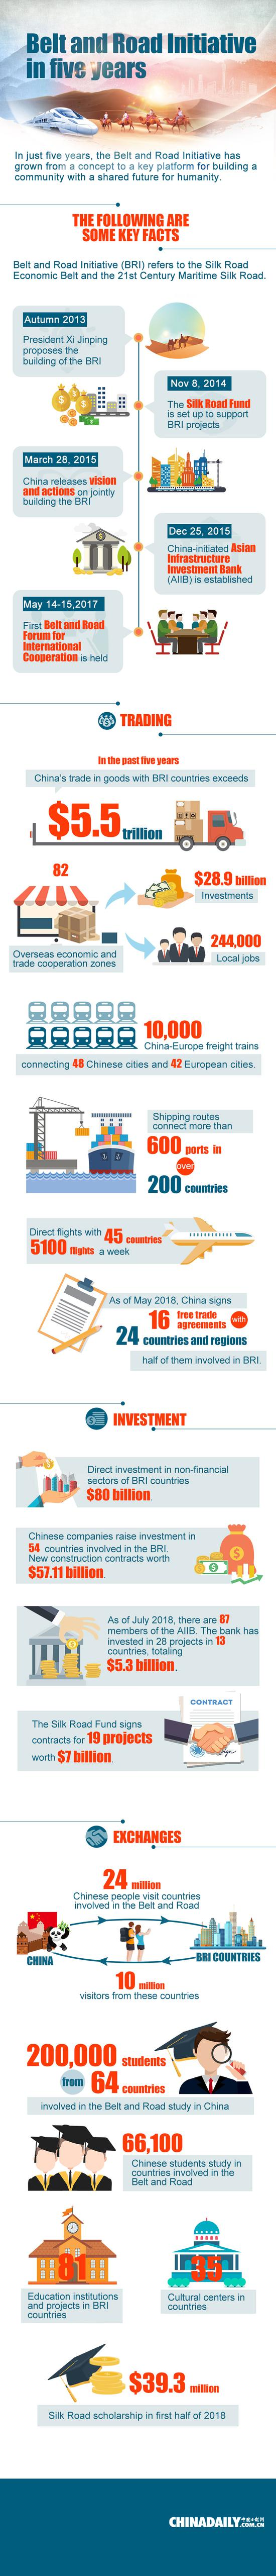 Belt and Road Initiative in five years